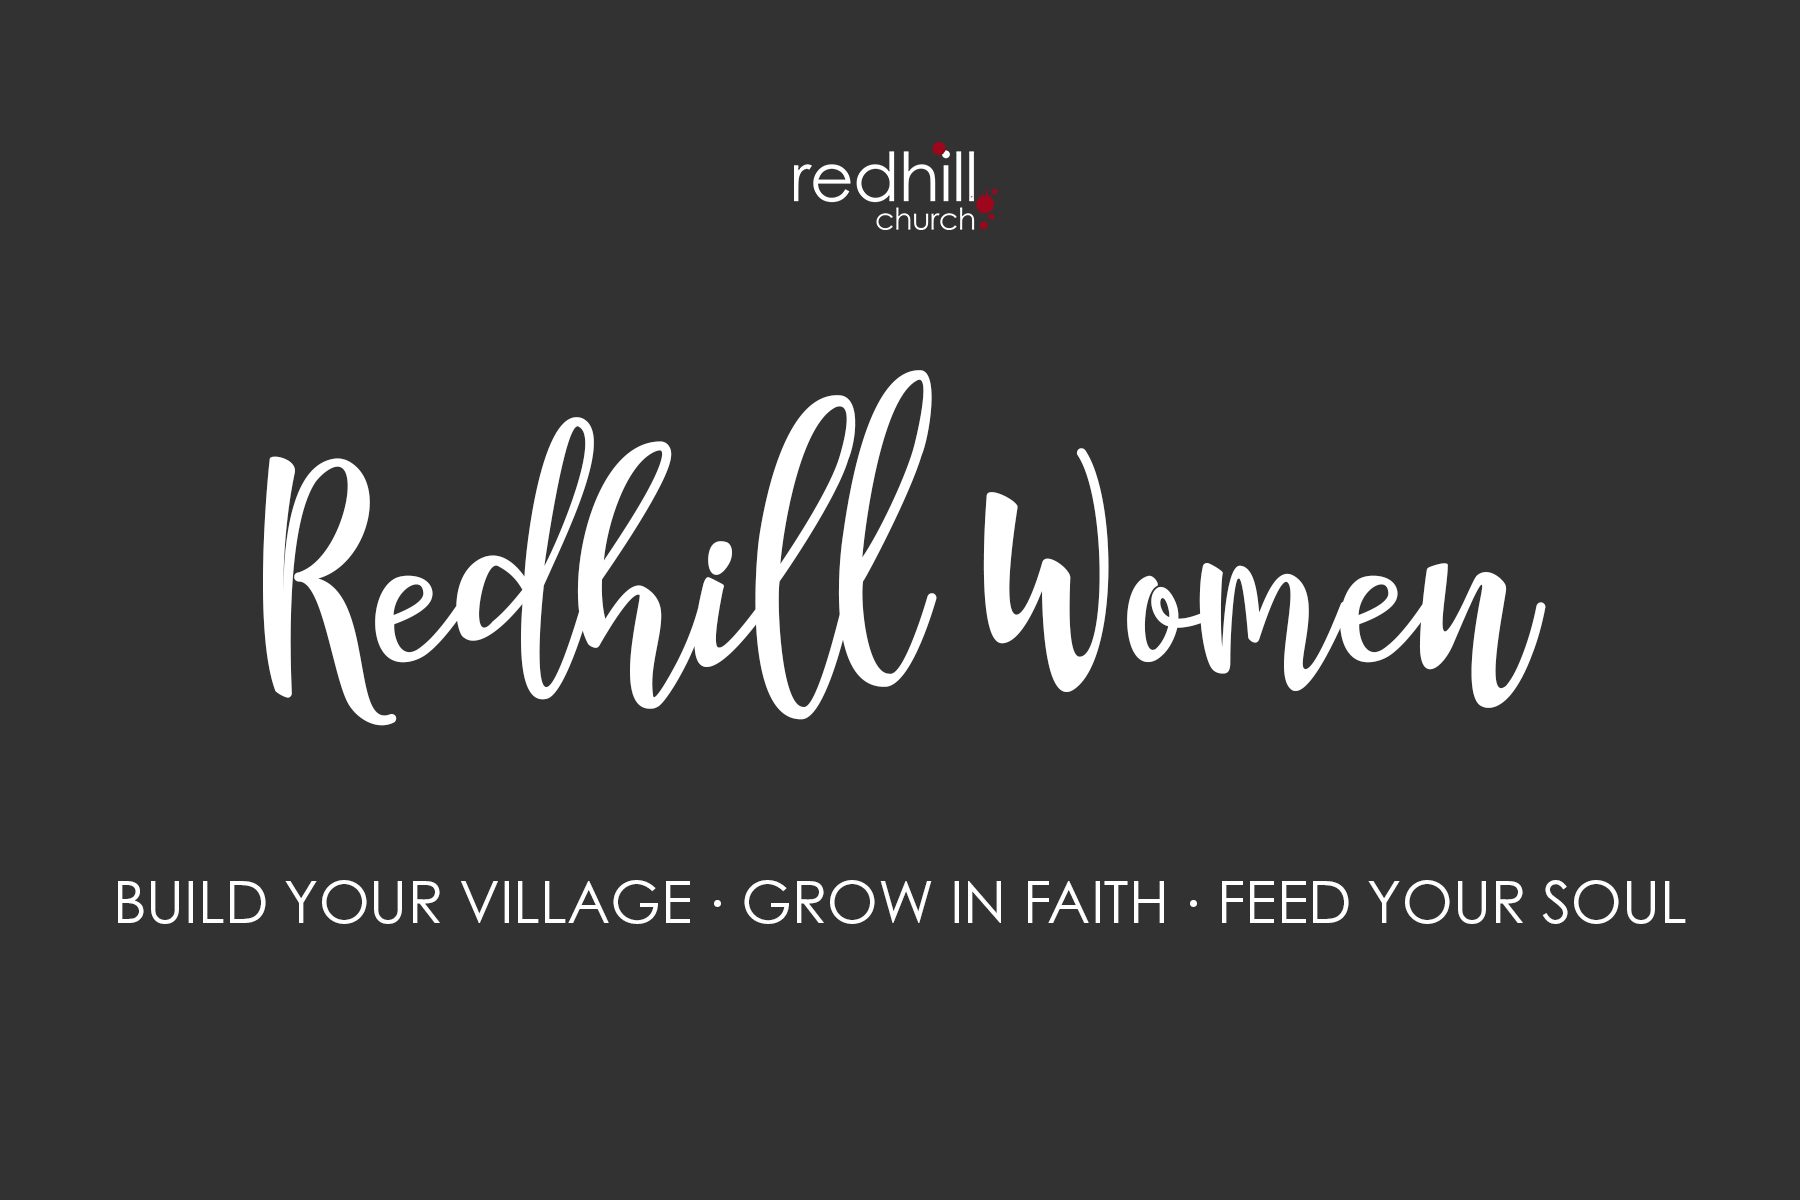 Redhill Women: build your village, grow in faith, feed your soul.